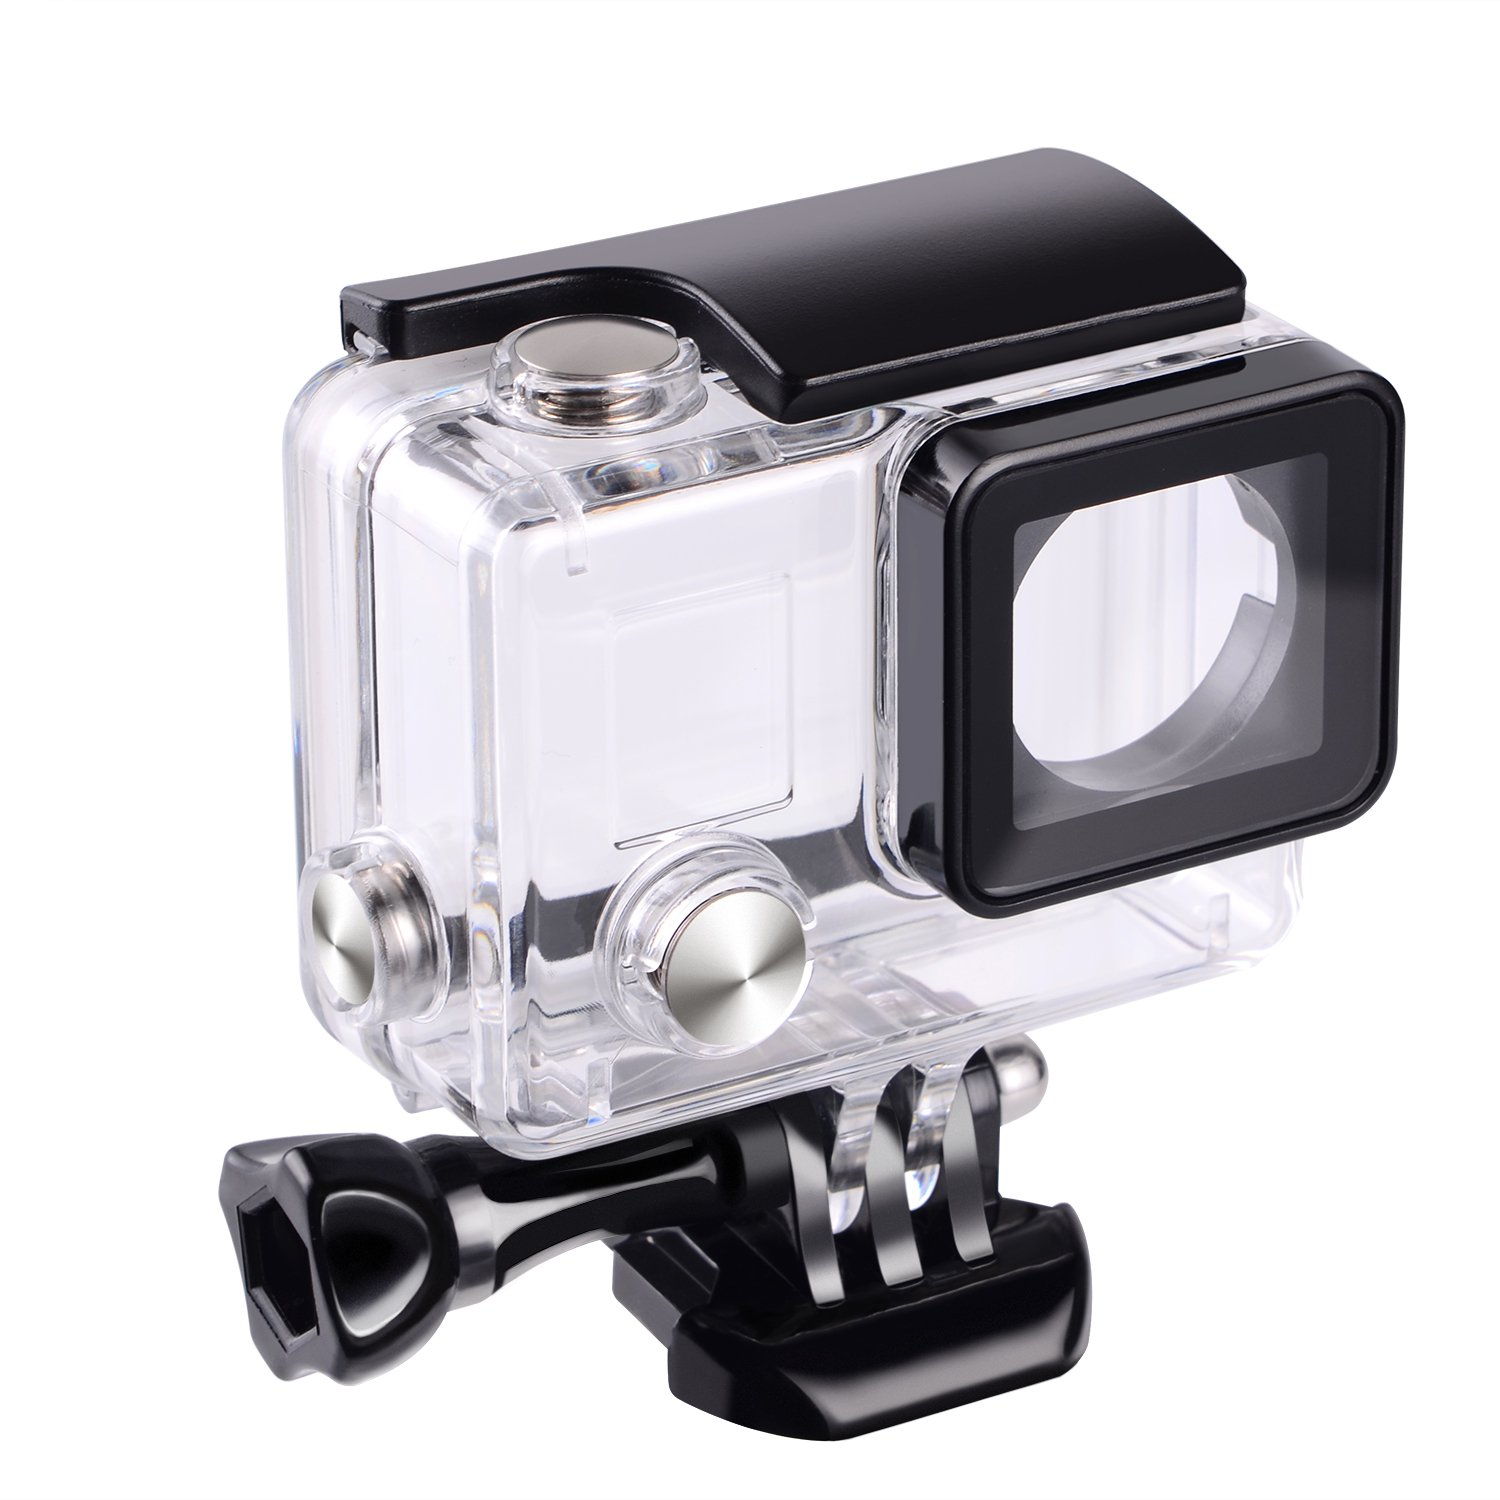 Suptig Waterproof Case Protective Housing for GoPro Hero 4, Hero 3+, Hero3 Outside Sport Camera For Underwater Use - Water Resistant up to 147ft (45m) RSX-197